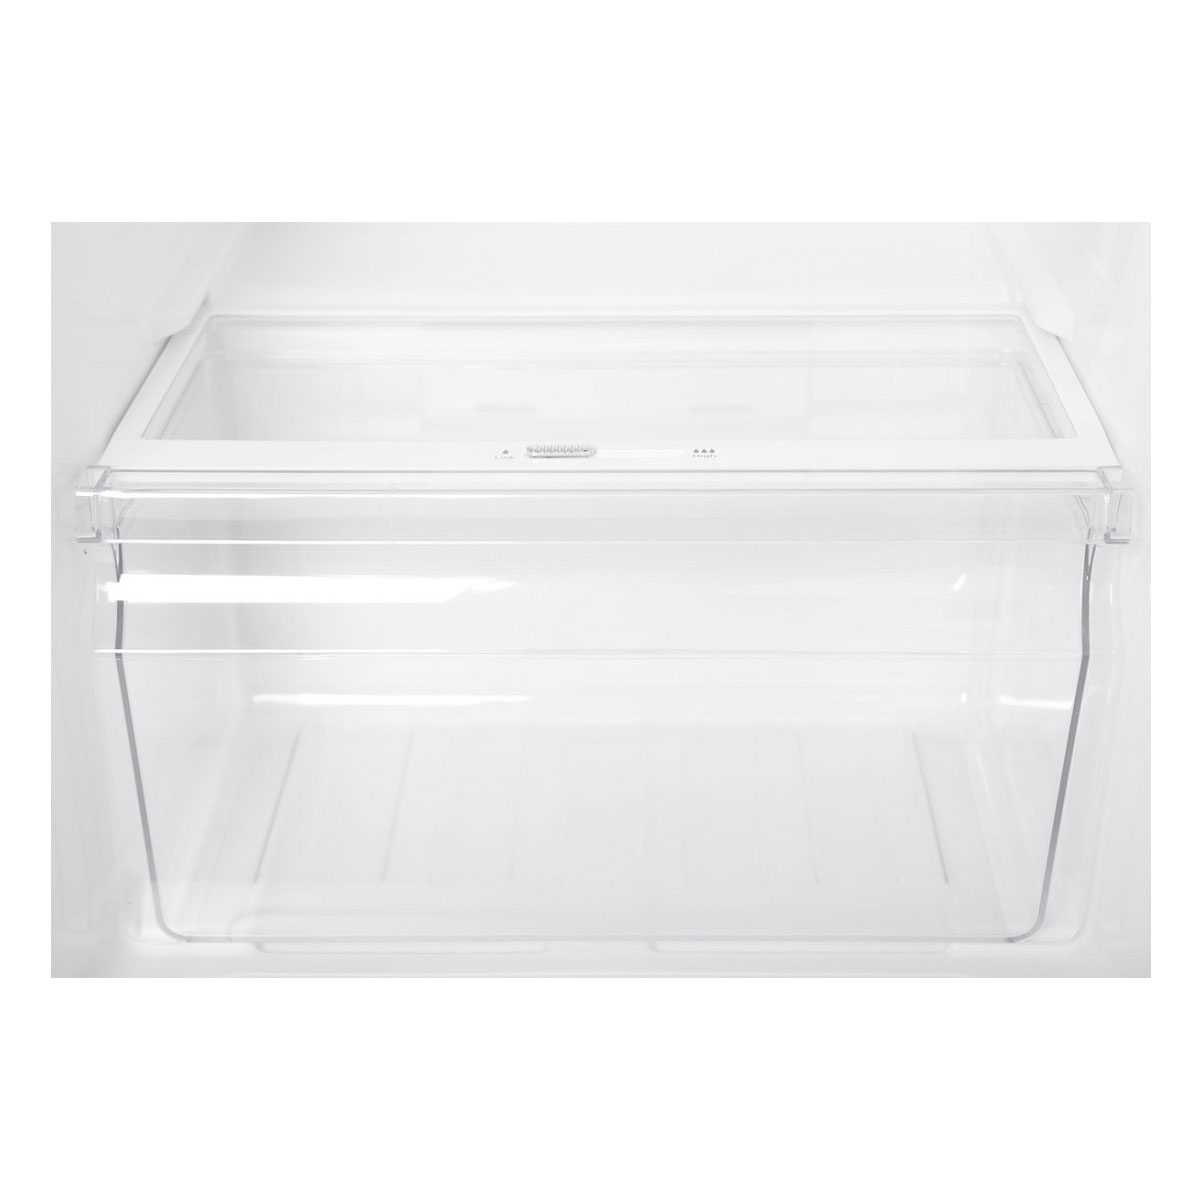 Hisense HR6TFF230 230Litres Top Mount Fridge 35249